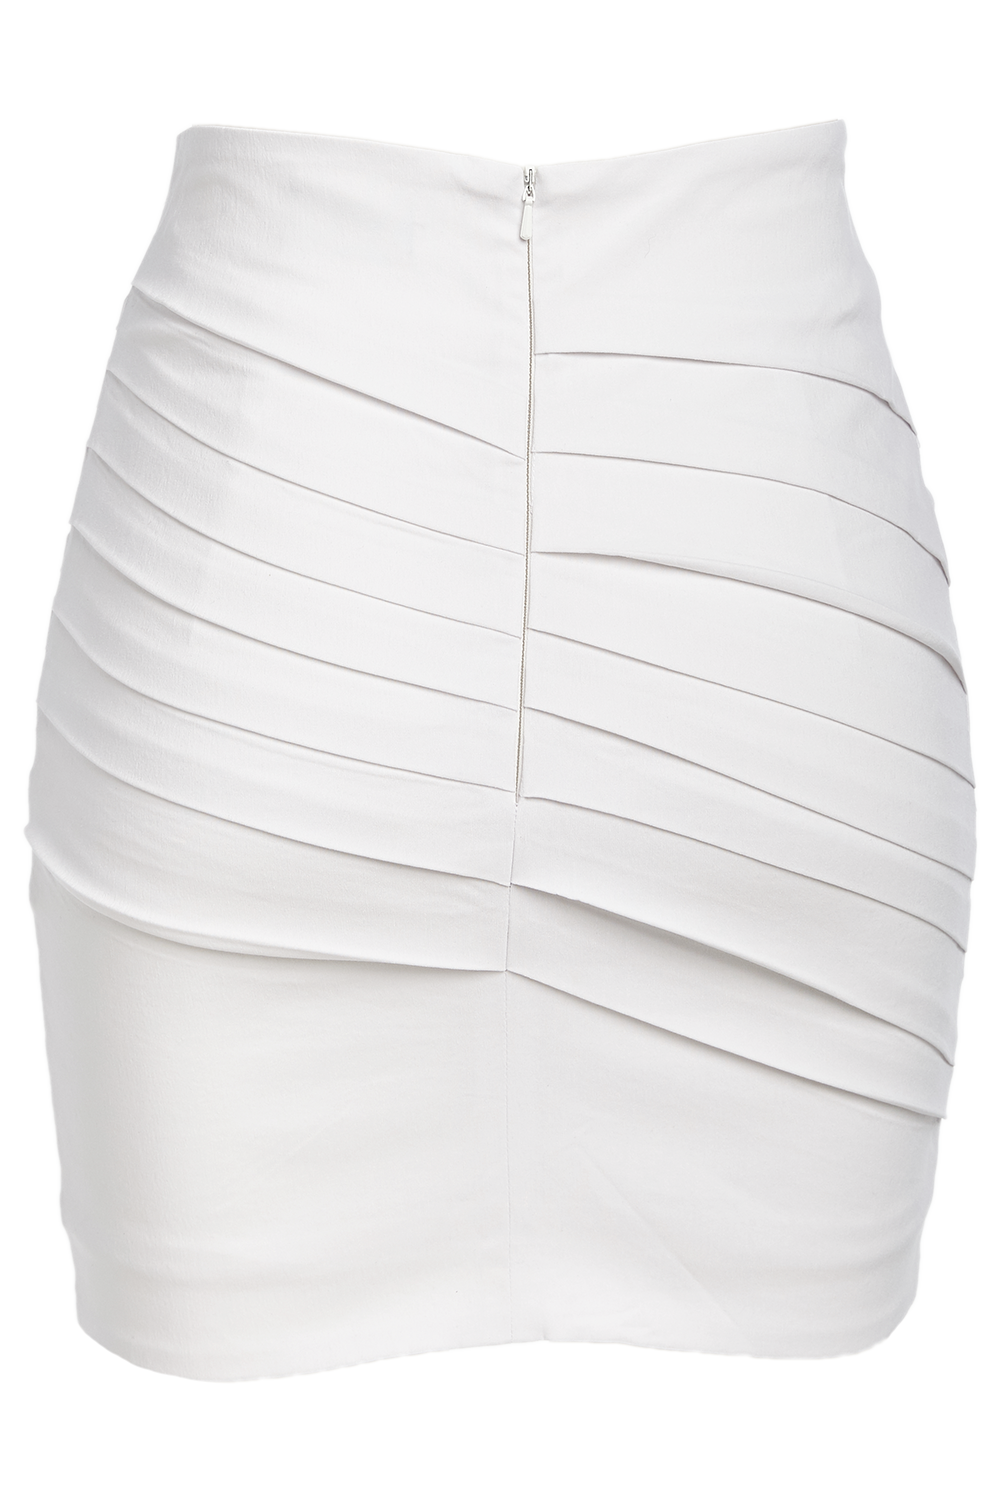 SIDNEY TUCK MINI SKIRT in colour BRIGHT WHITE